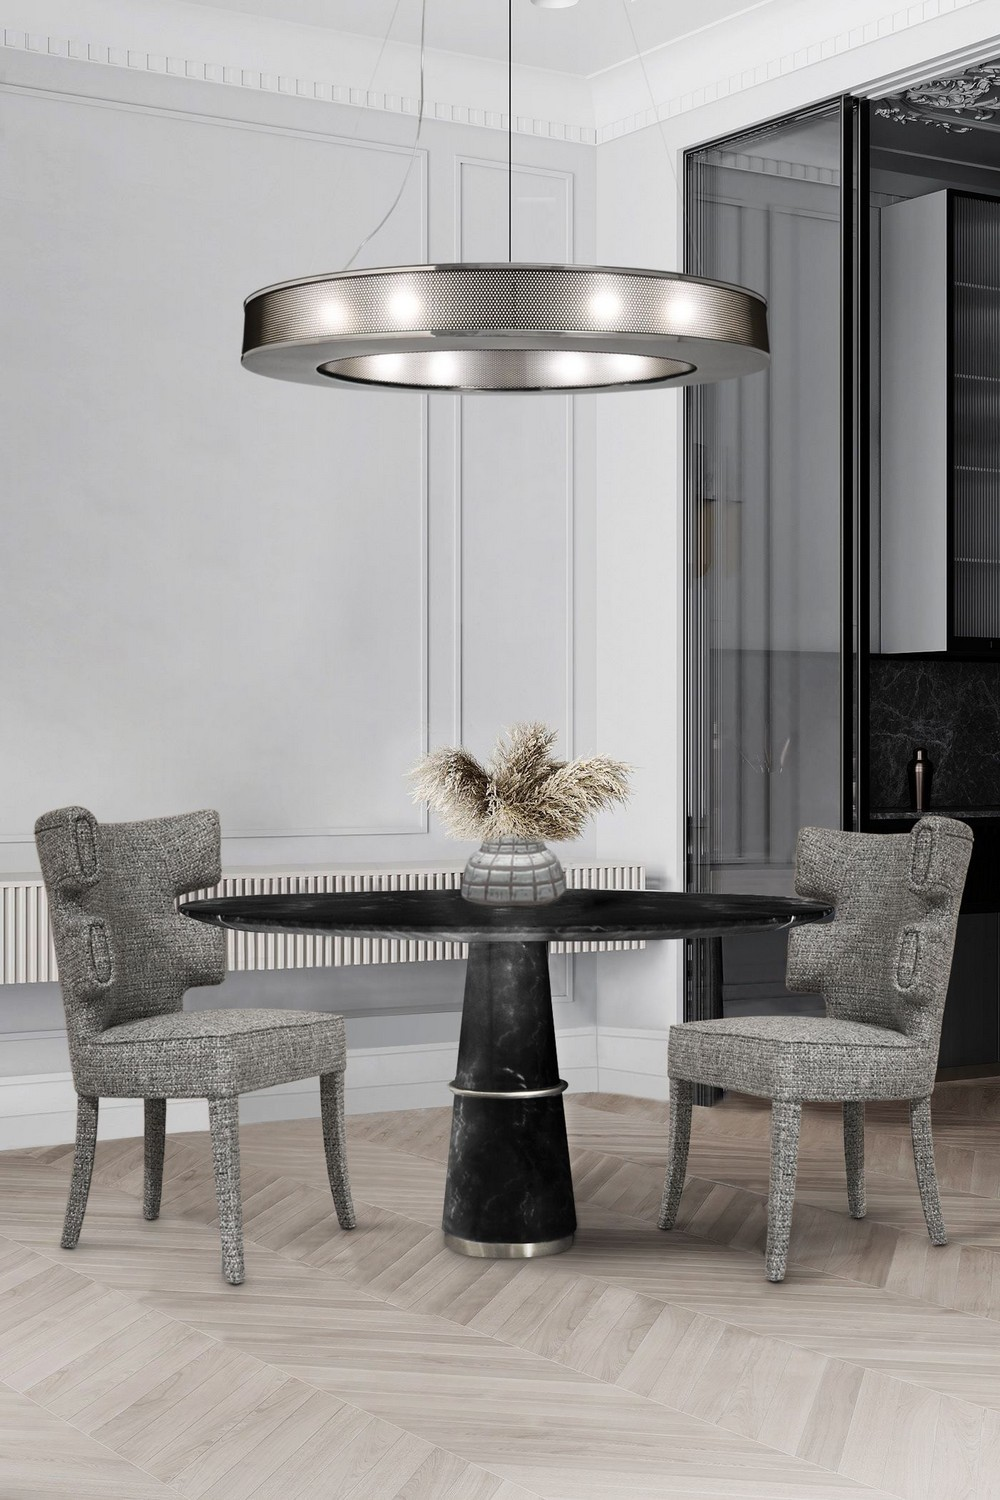 Luxury Dining Chairs To Transform Your Next Dining Room Project dining chairs Luxury Dining Chairs To Transform Your Next Dining Room Project n9Uk0mfg